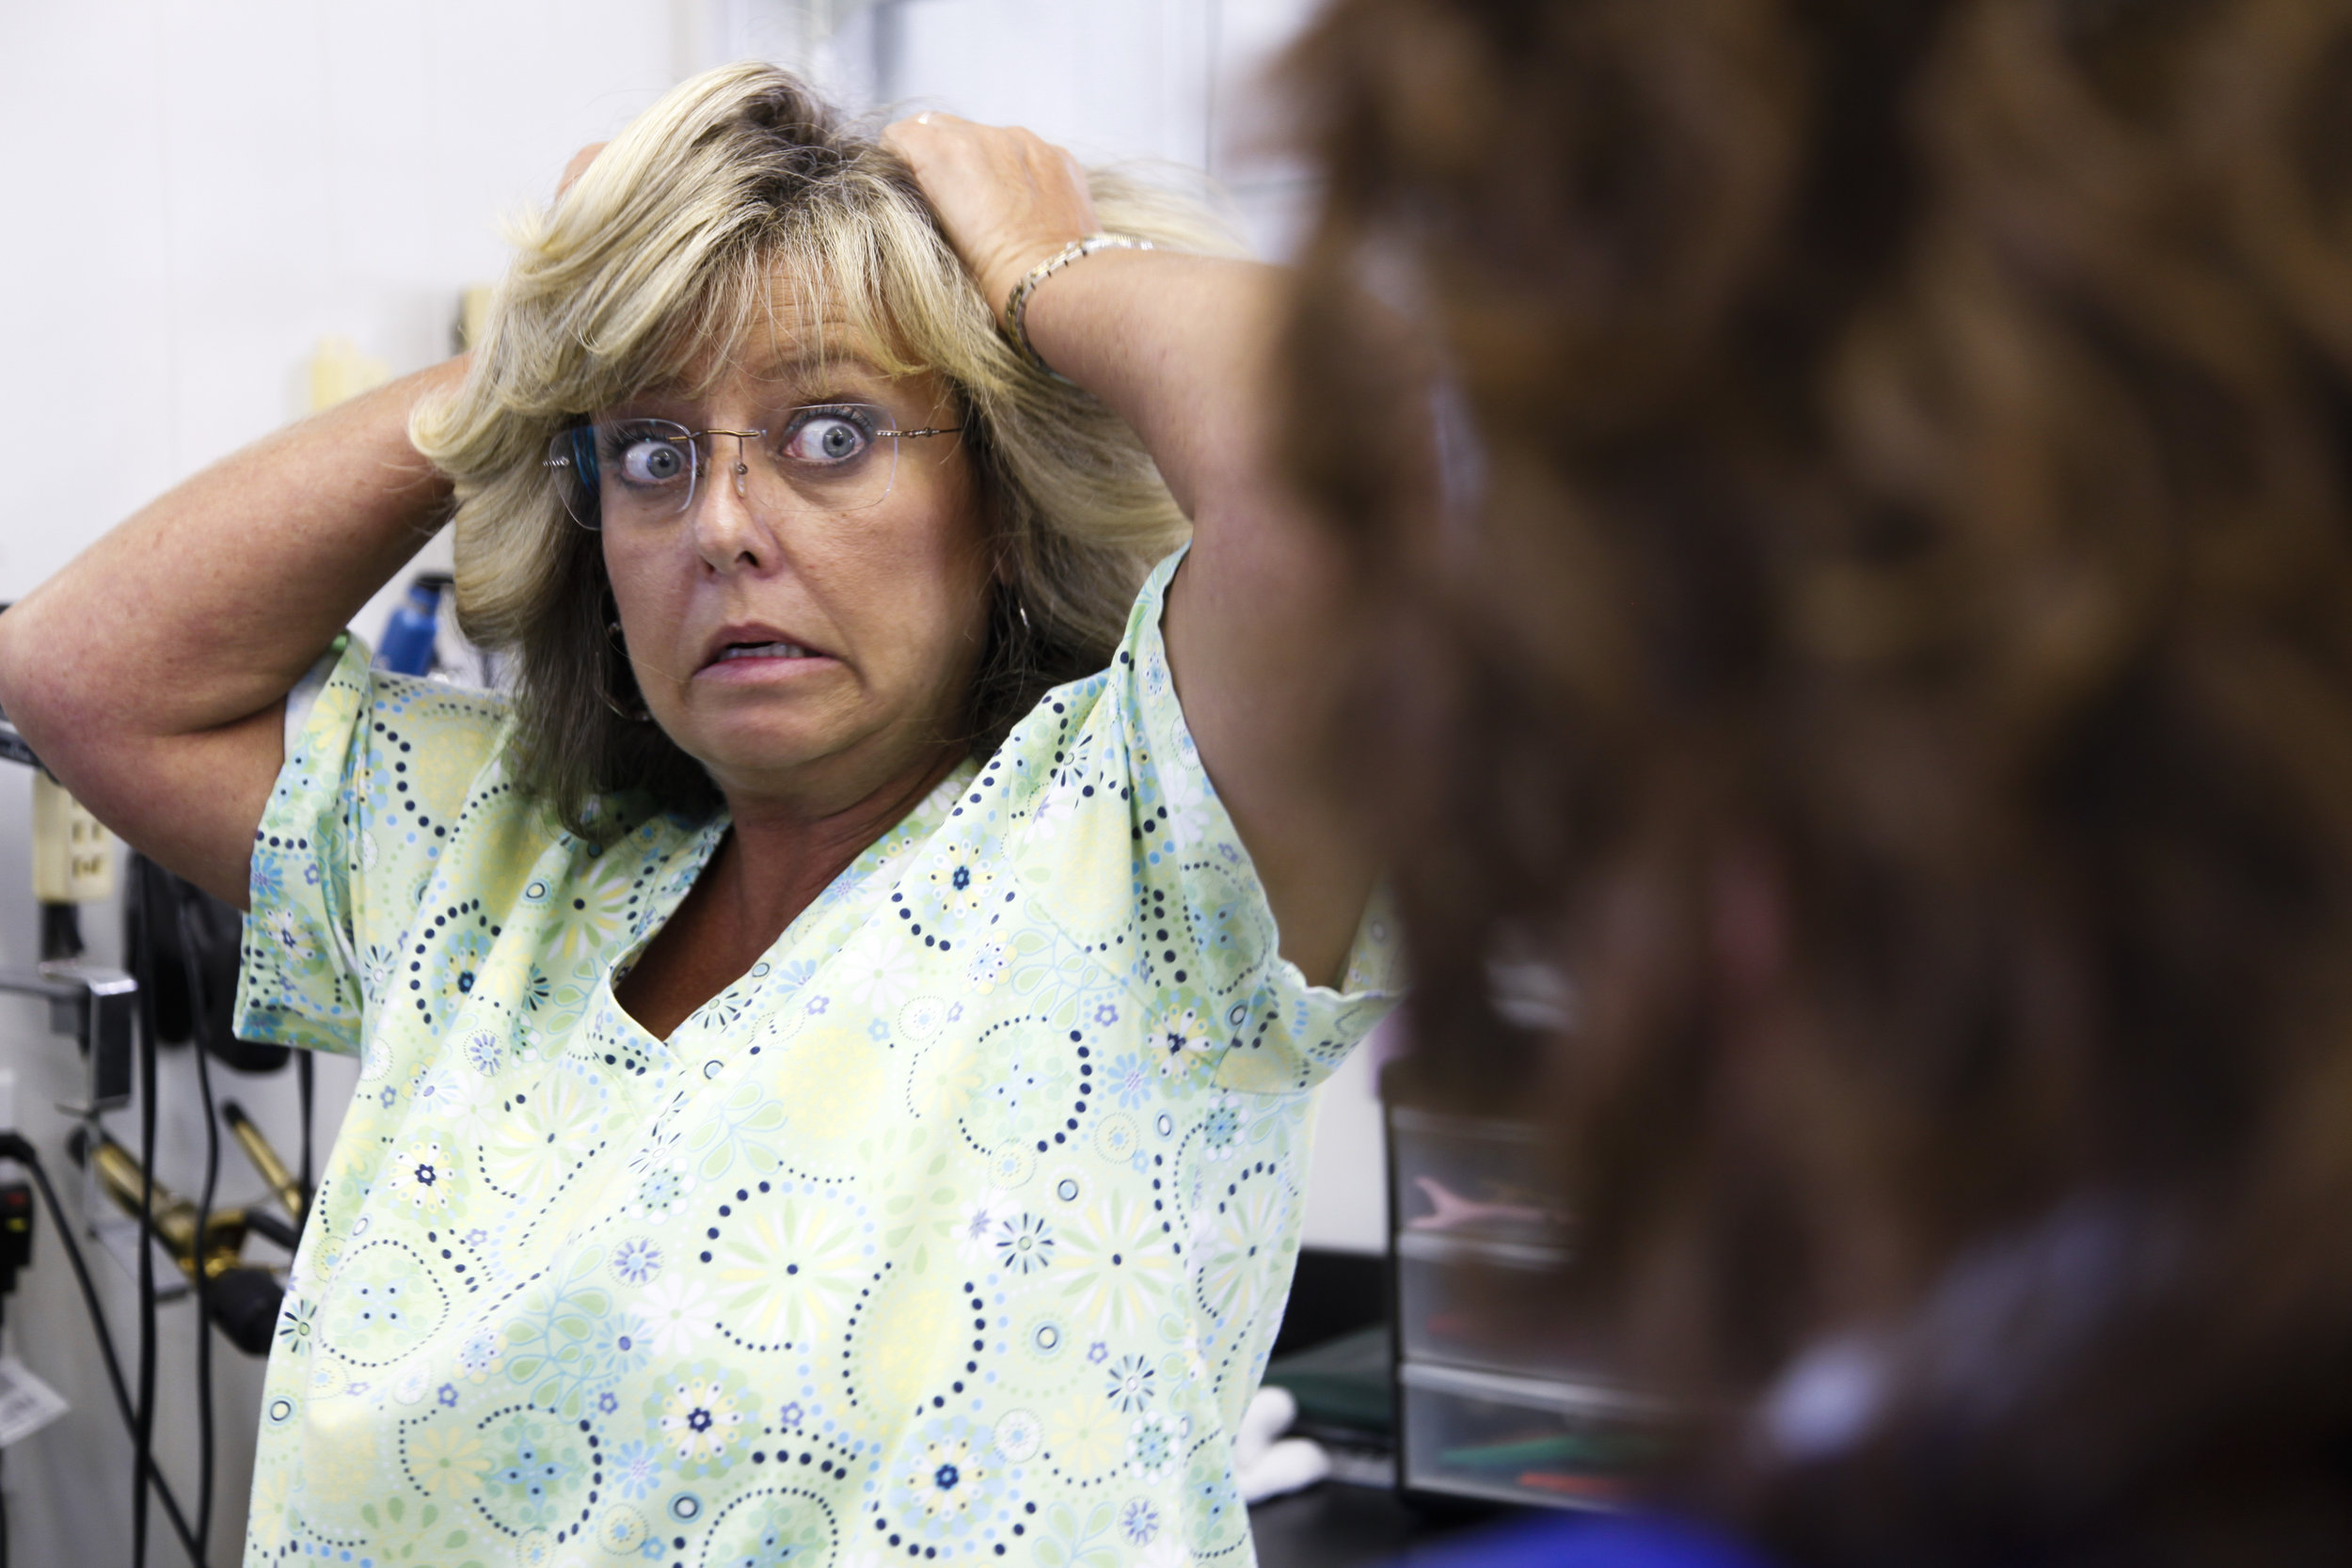 Kelly Alvey (left) talks to her friend Rhonda Gillham about how frizzy her hair gets at the salon.